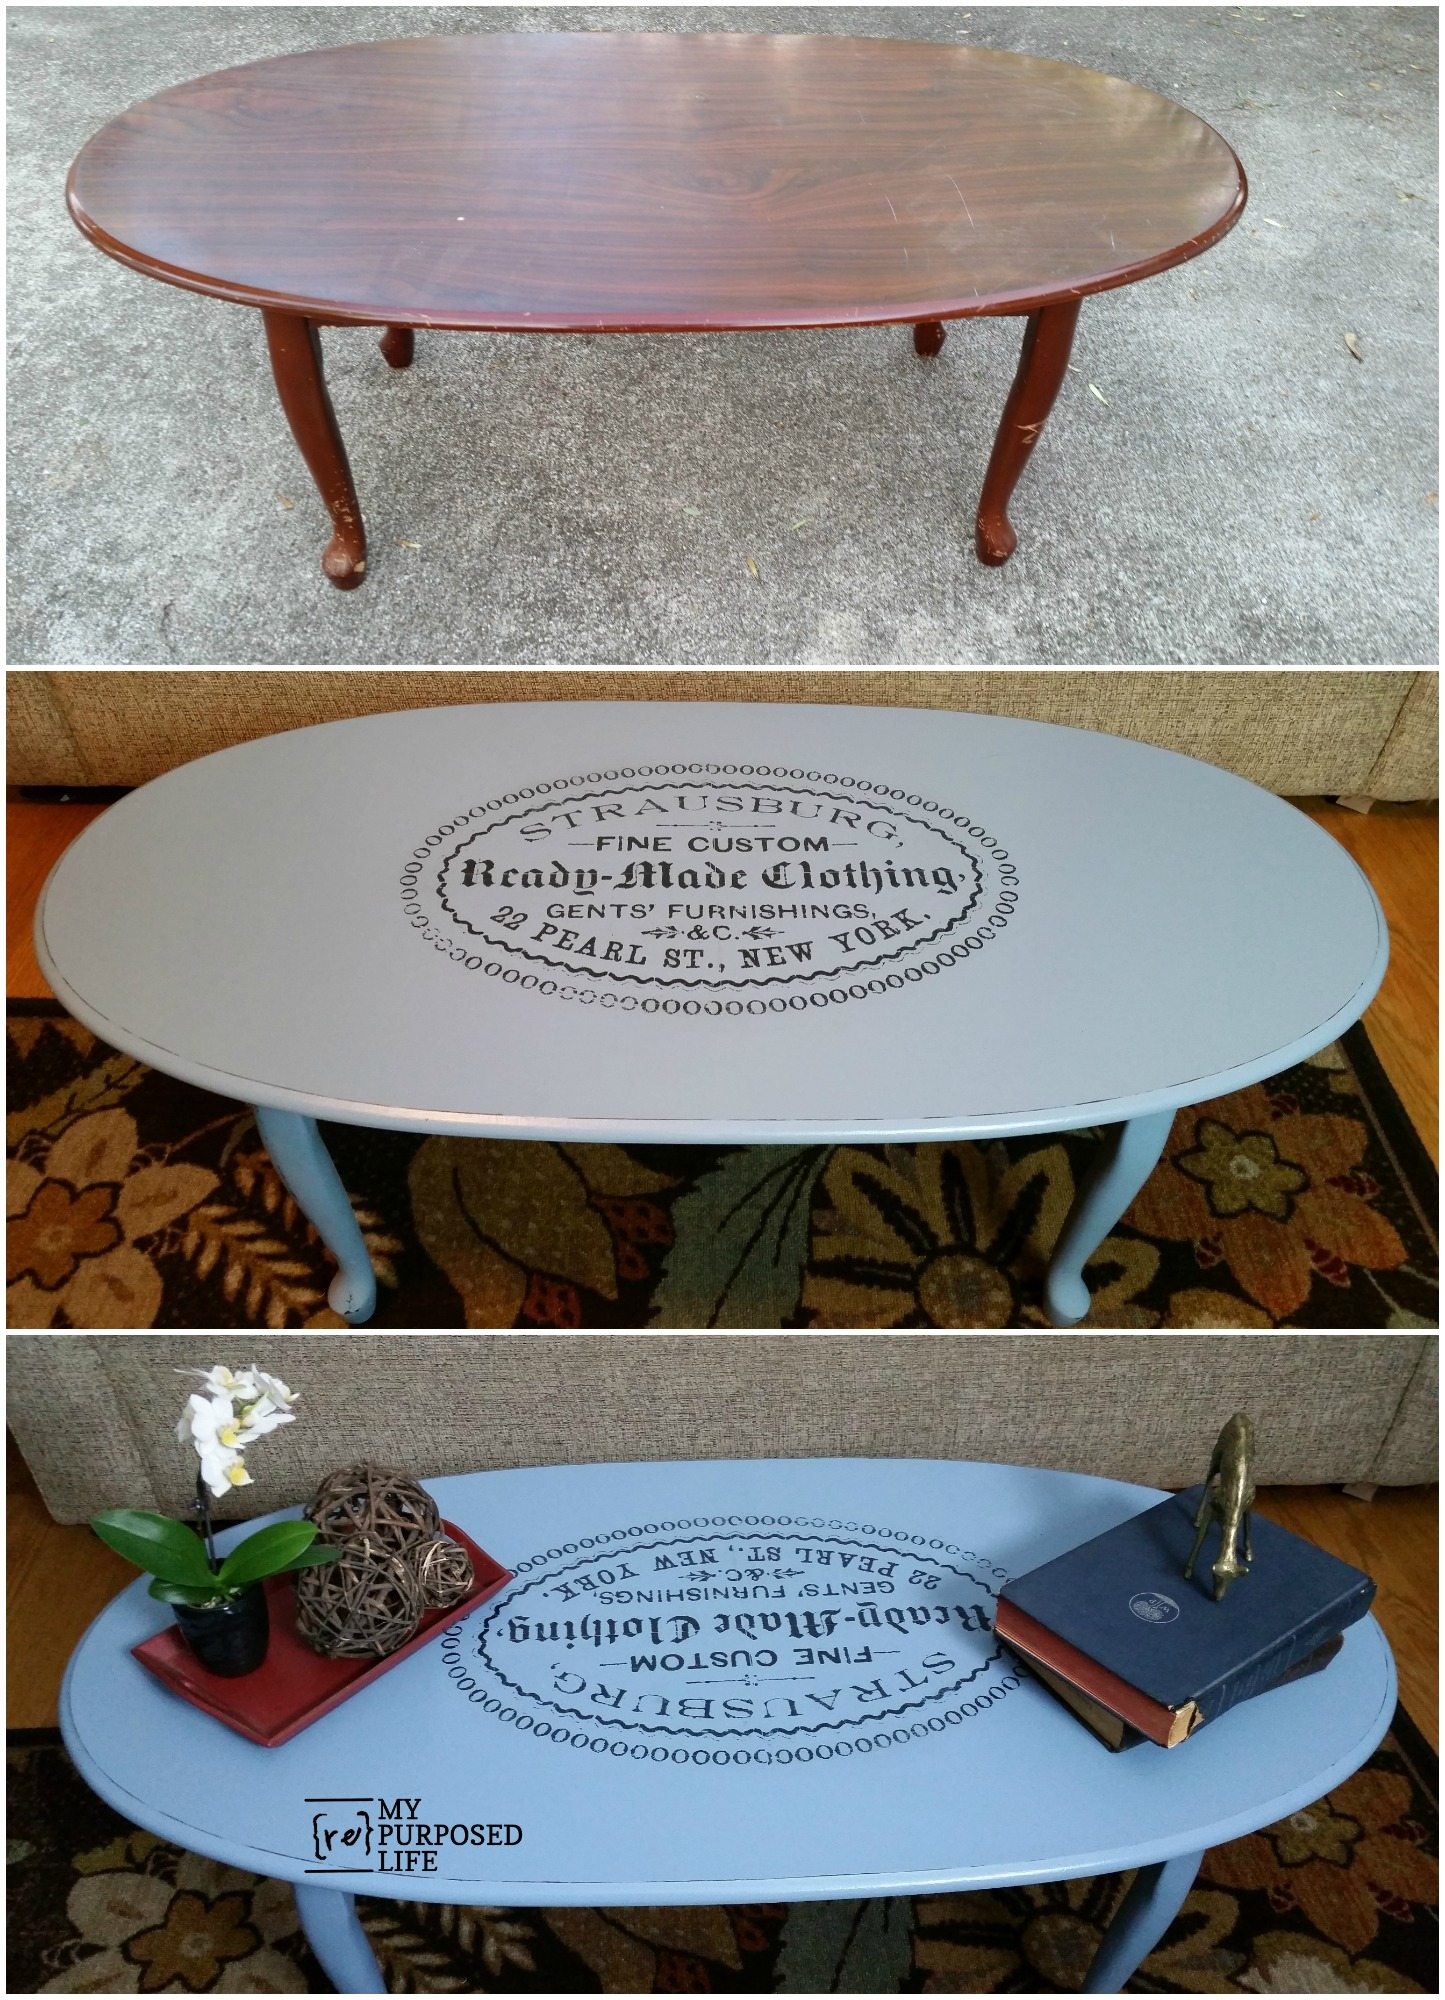 I did an easy image transfer on an old coffee table using 1Gel from Heirloom Traditions Paint. Transferring images is a fun way to update old furniture. via @repurposedlife